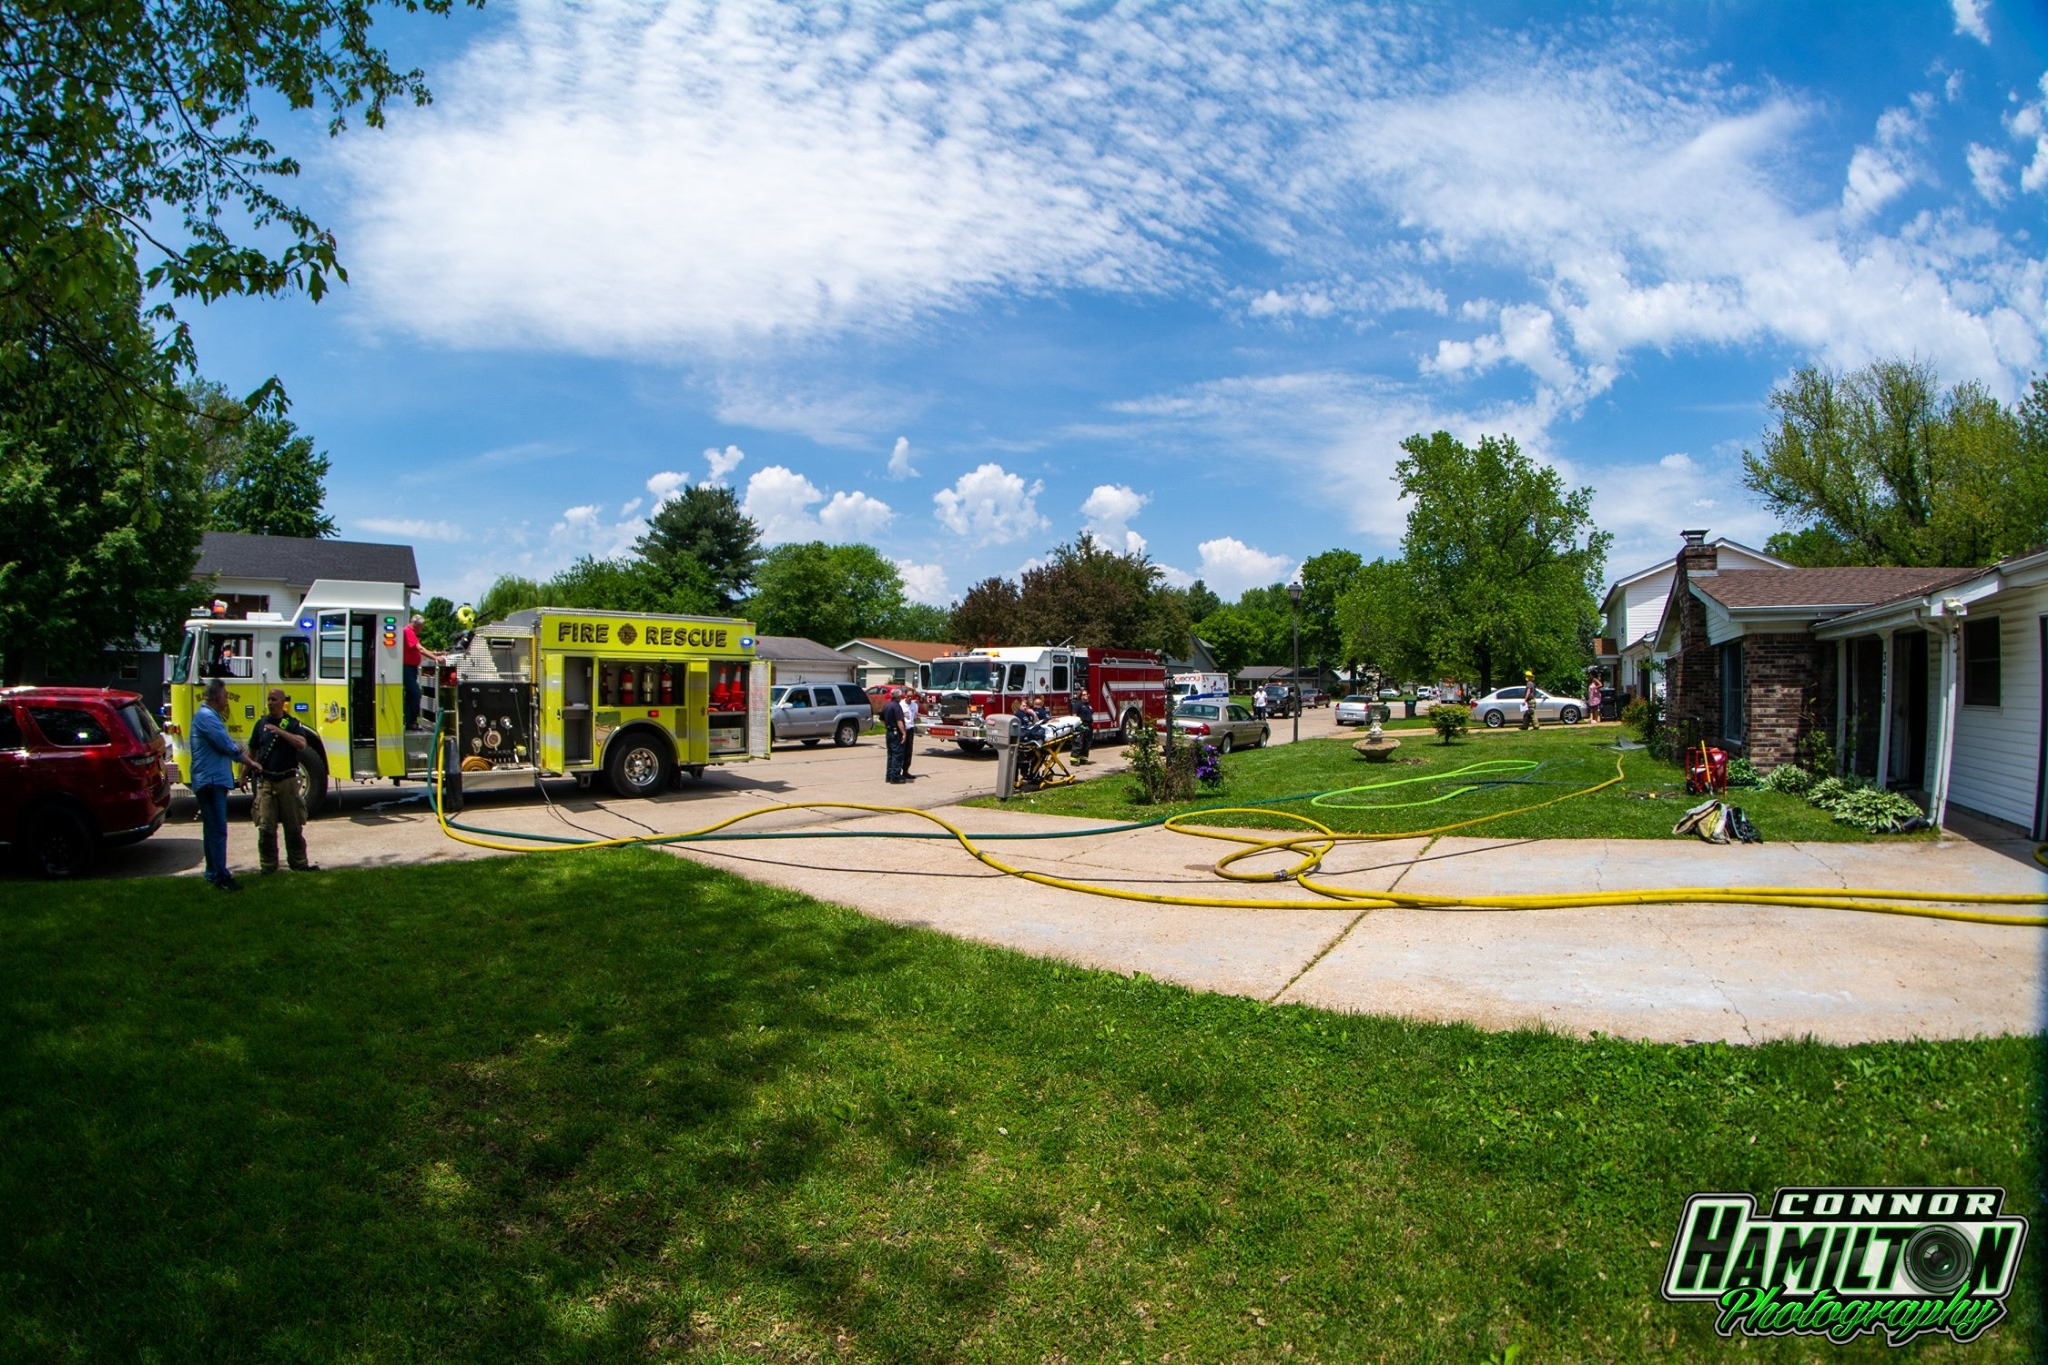 On 05/16/2019, East Side Firefighters responded for a residential structure fire. Mutual aid was received from Belleville and Swansea Fire Departments. Quick action by the first arriving companies prevented the fire from breaching the attic.